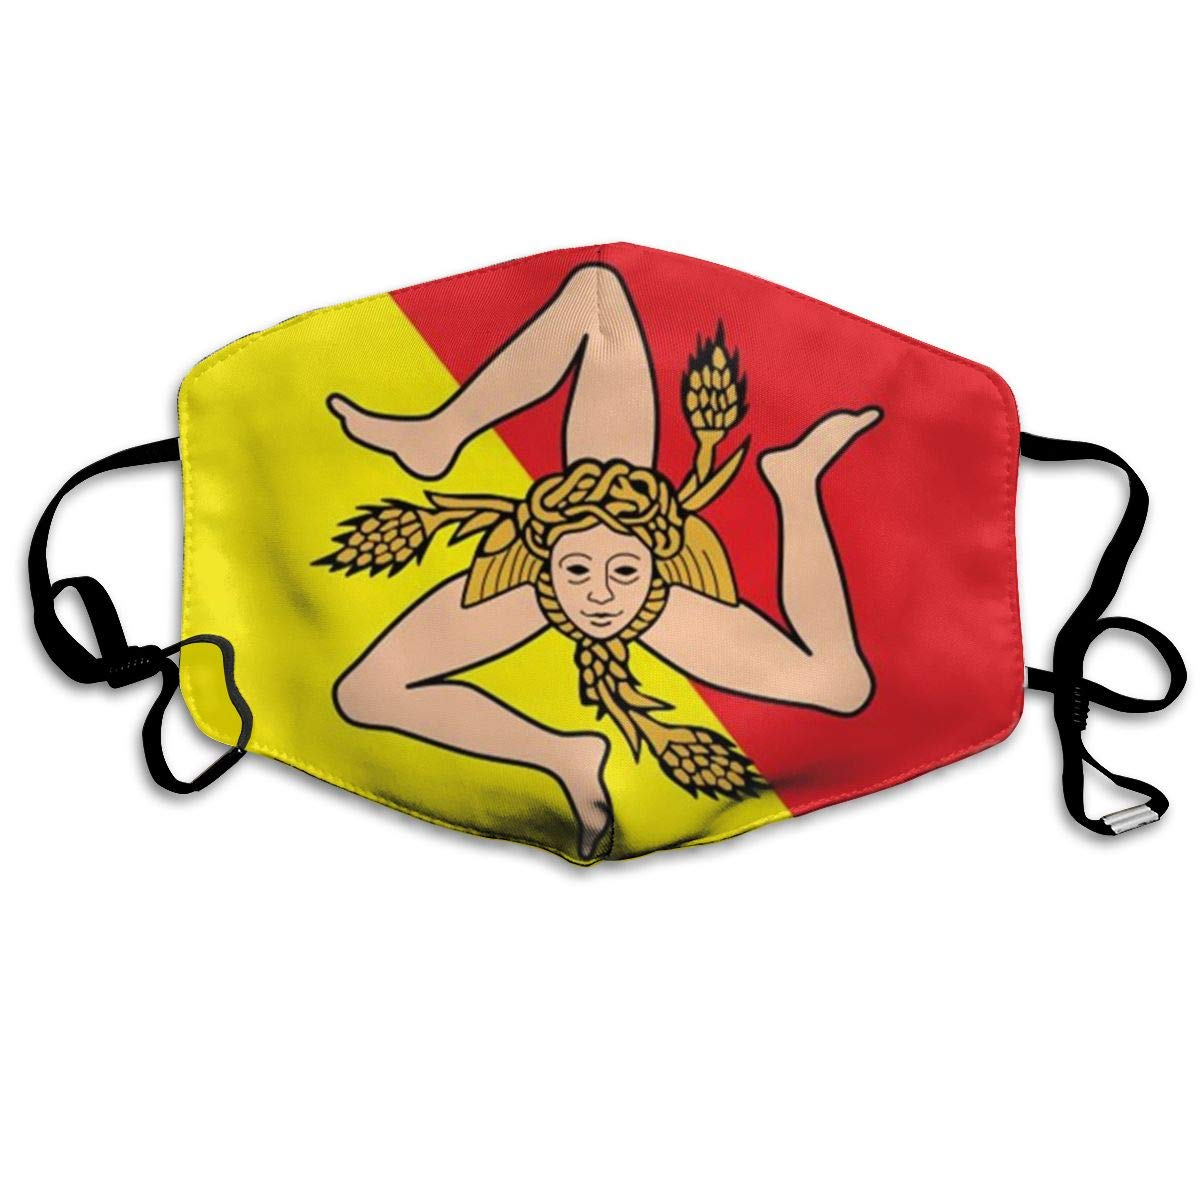 NiYoung Breathable Anti Dust Mouth Mask With Adjustable Earloop, Warm Windproof Reusable Washable Half Face Mask, Sicily Flag